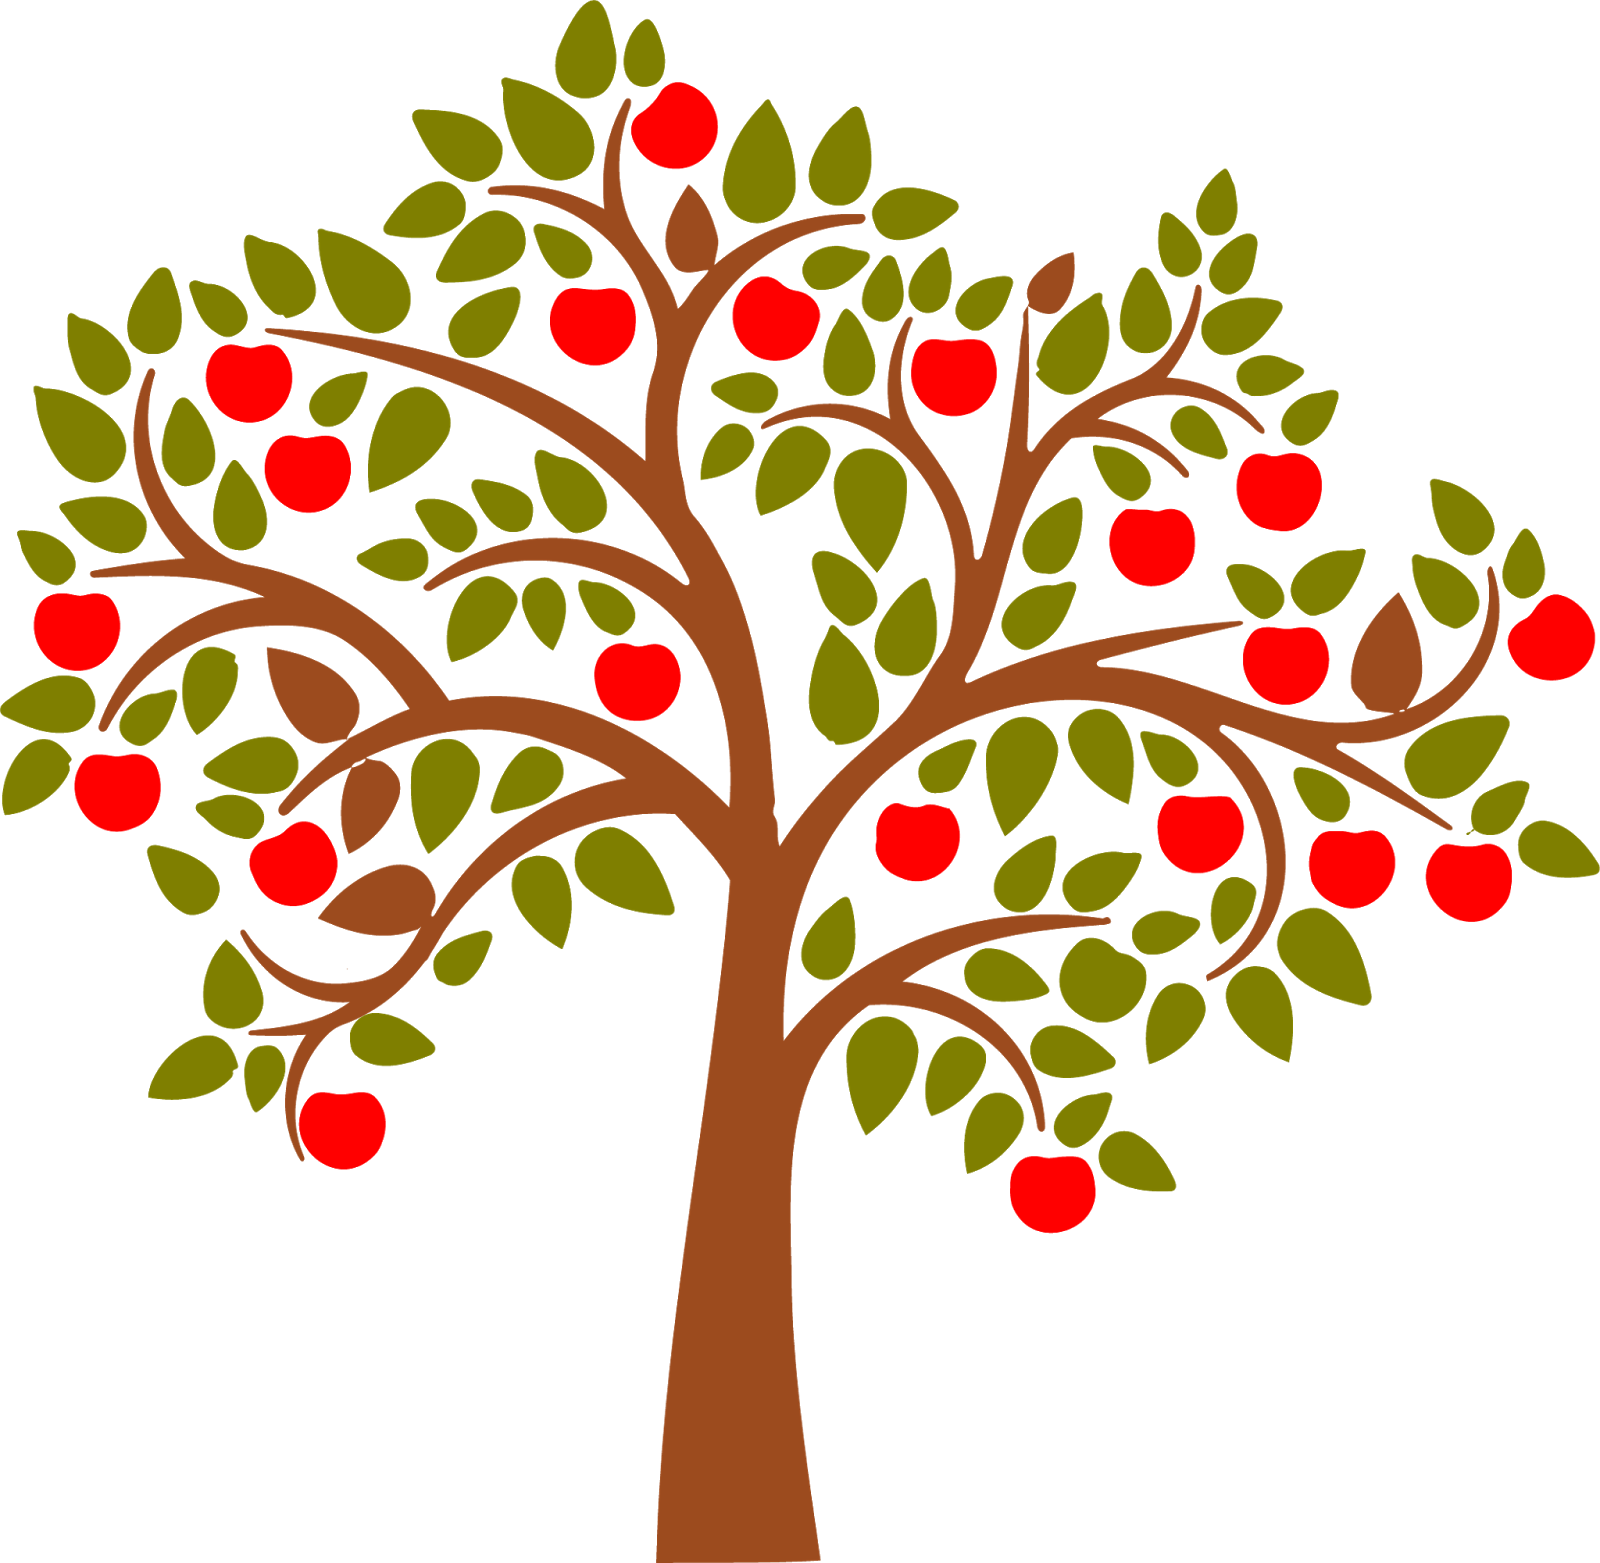 Clipart hearts tree, Clipart hearts tree Transparent FREE.